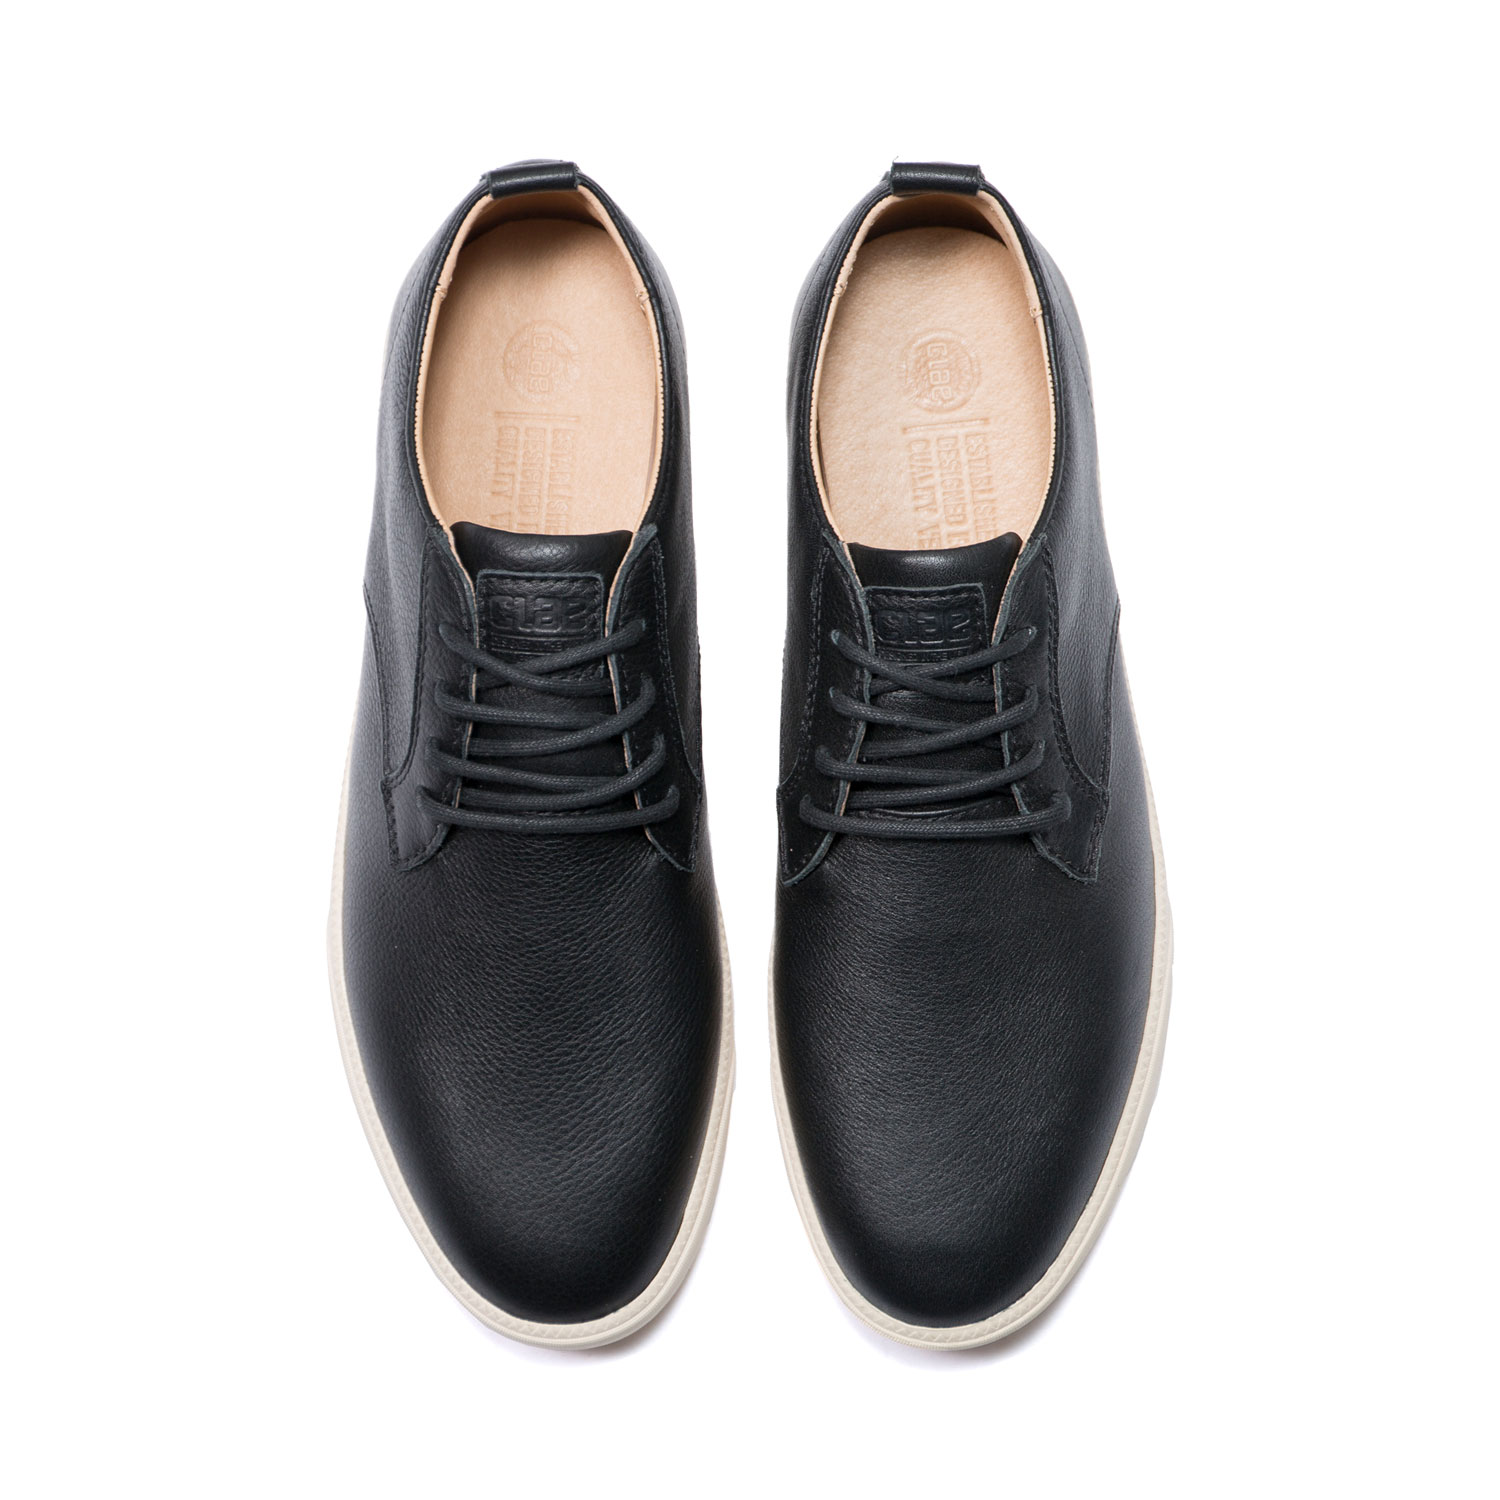 CLAE Ellington Leather Herren Schuhe – Bild 3